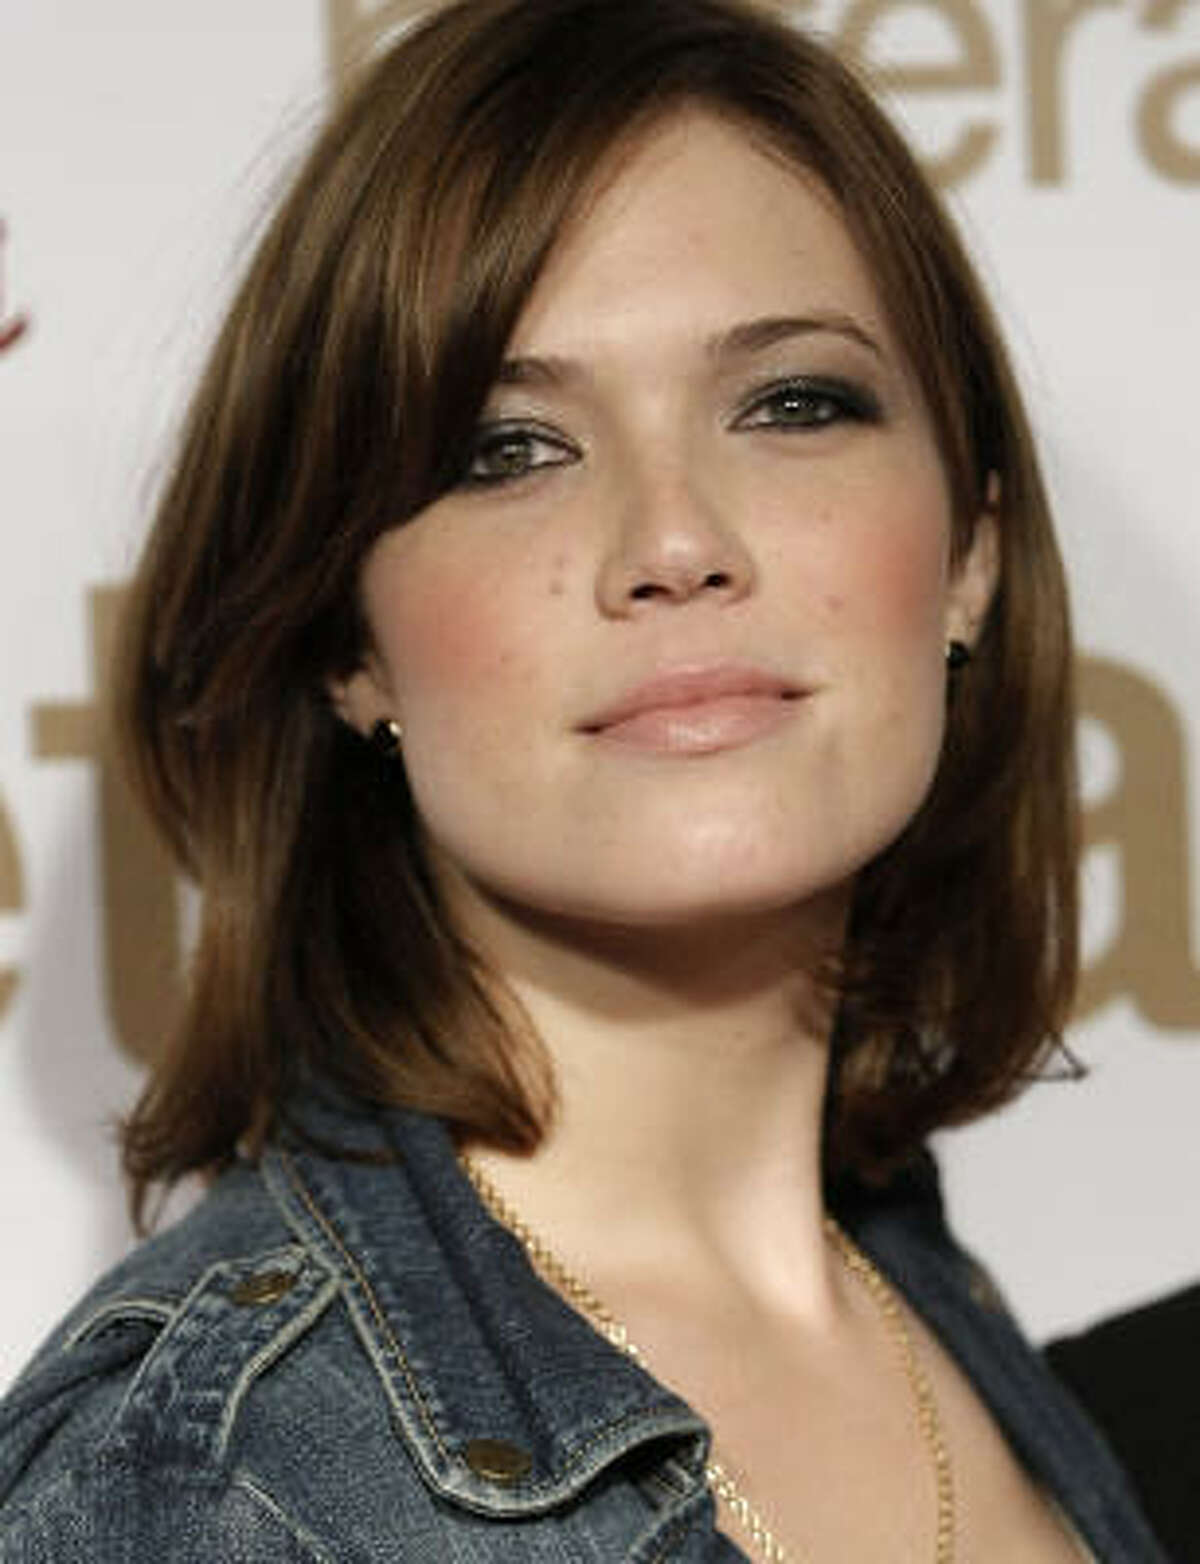 Mandy Moore She attended Catholic high school, but left the faith as an adult.